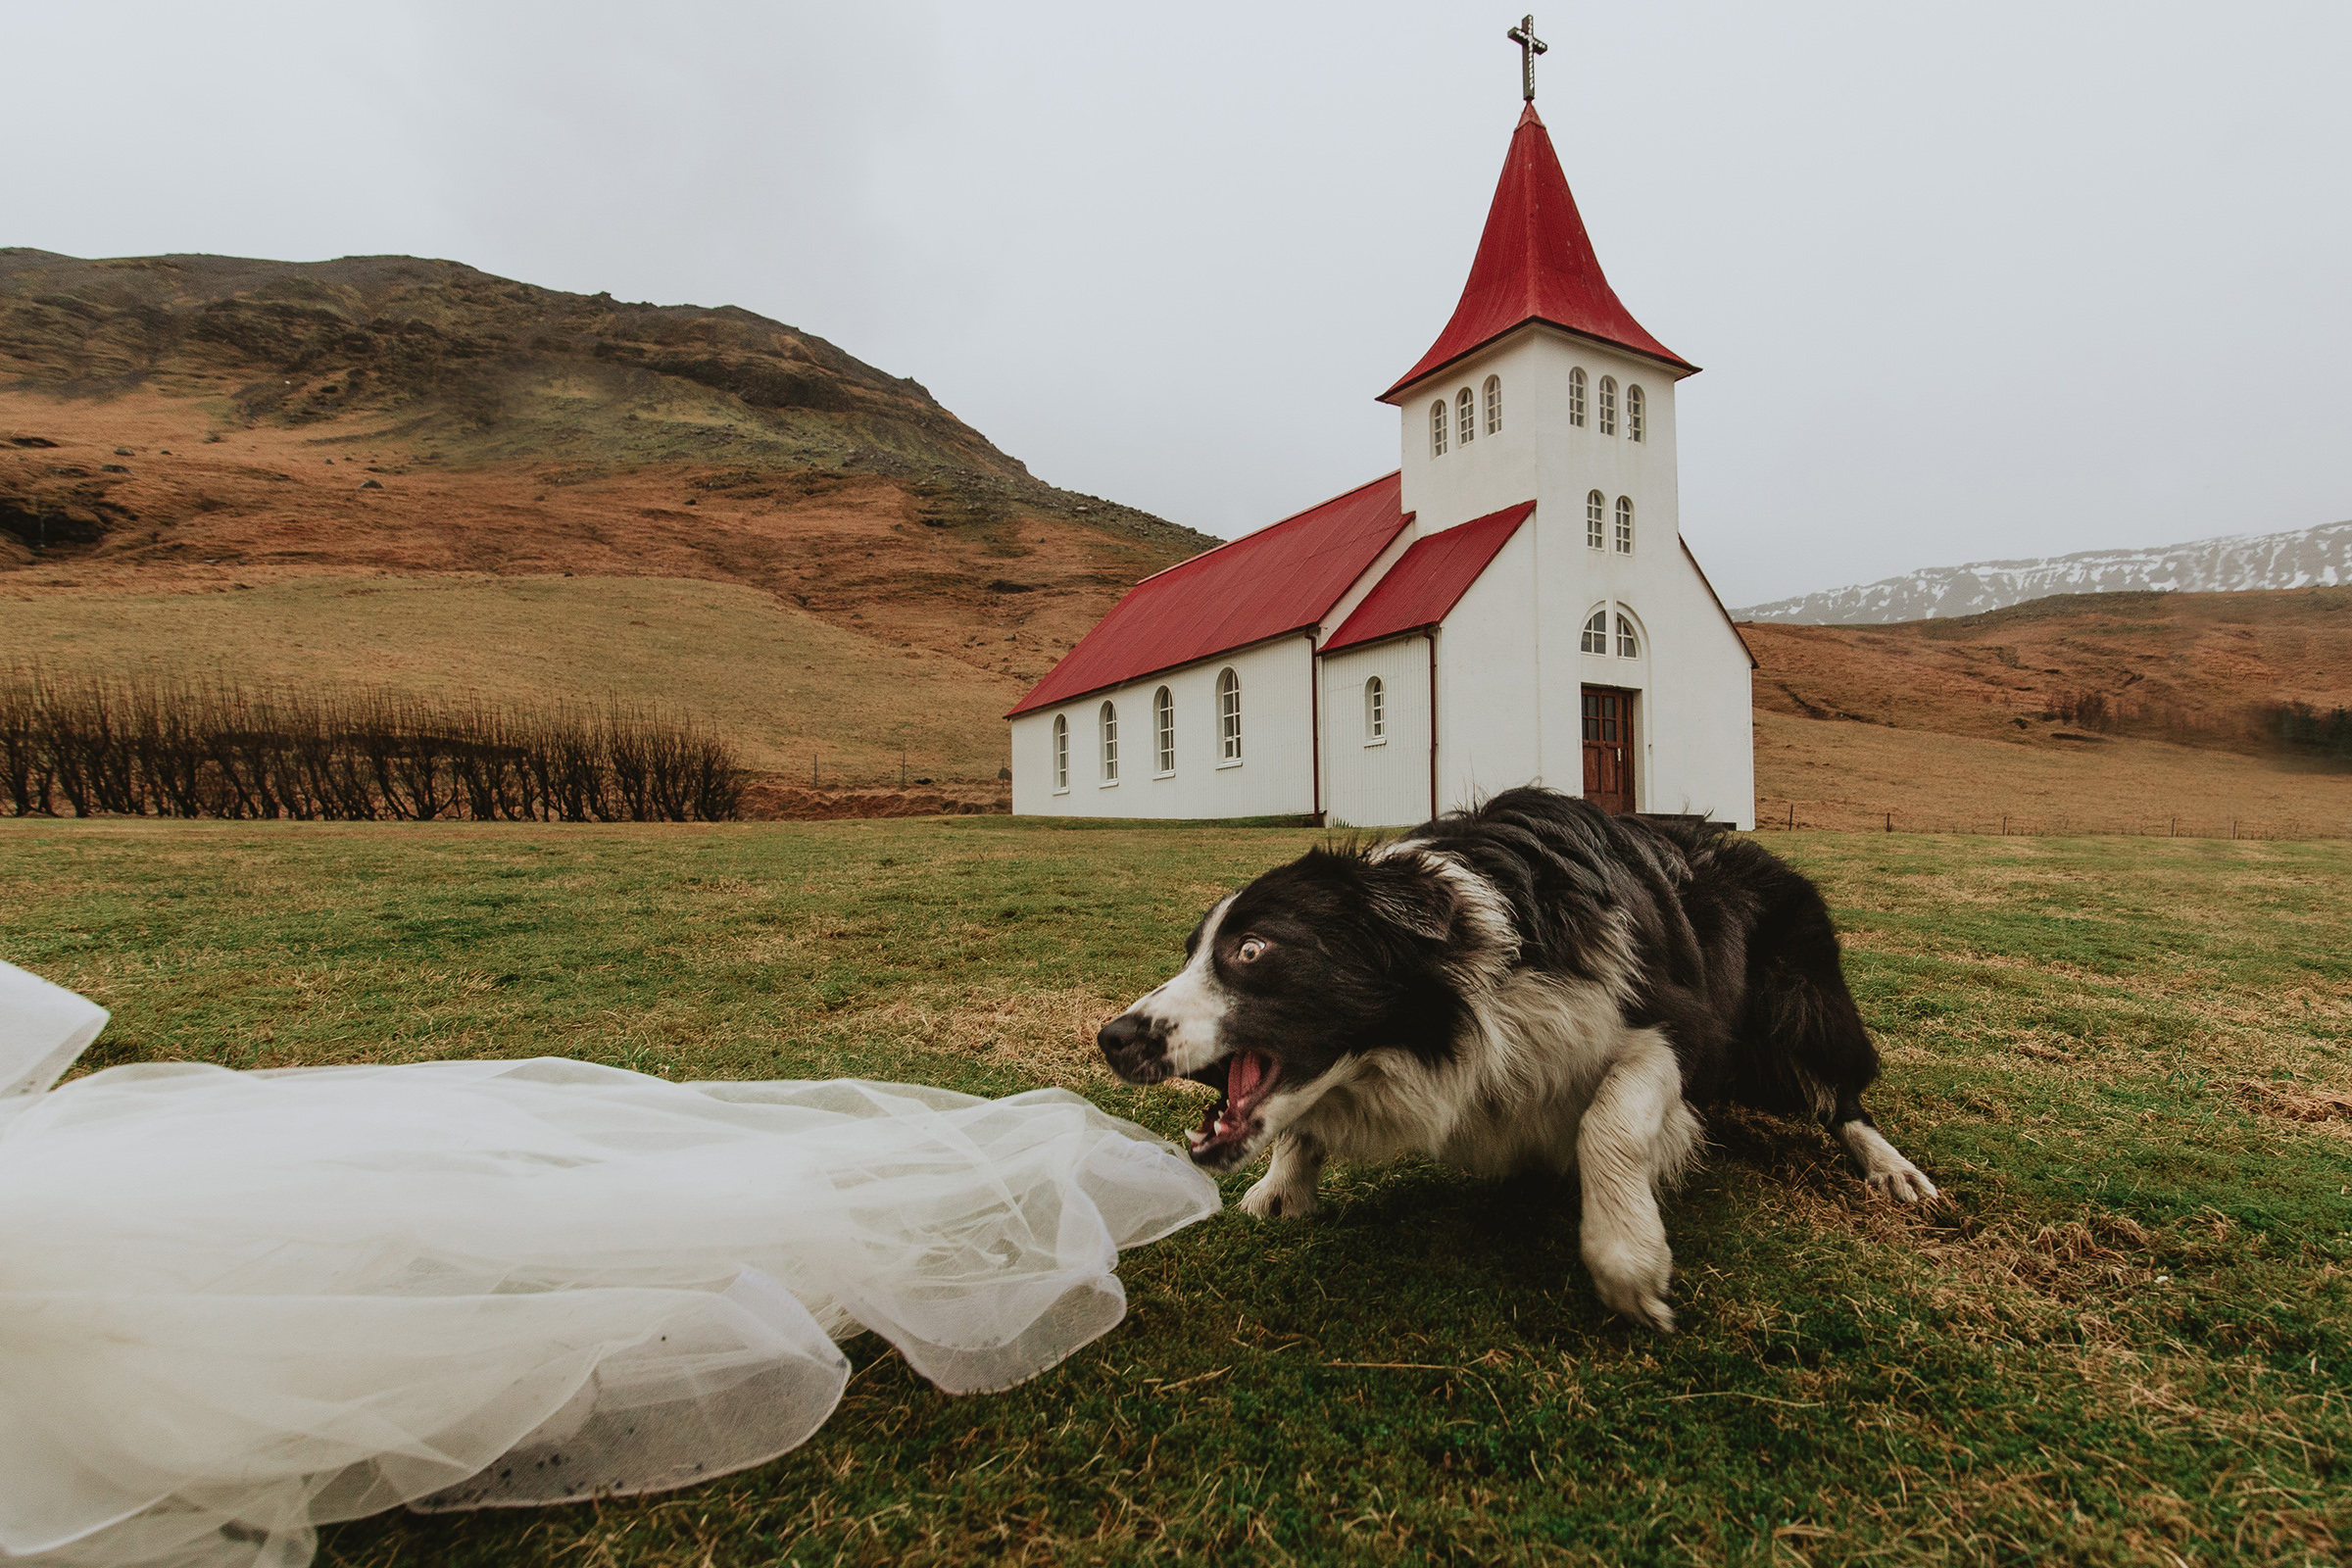 dog-show-fotolux-worlds-best-wedding-photos-dog-and-church